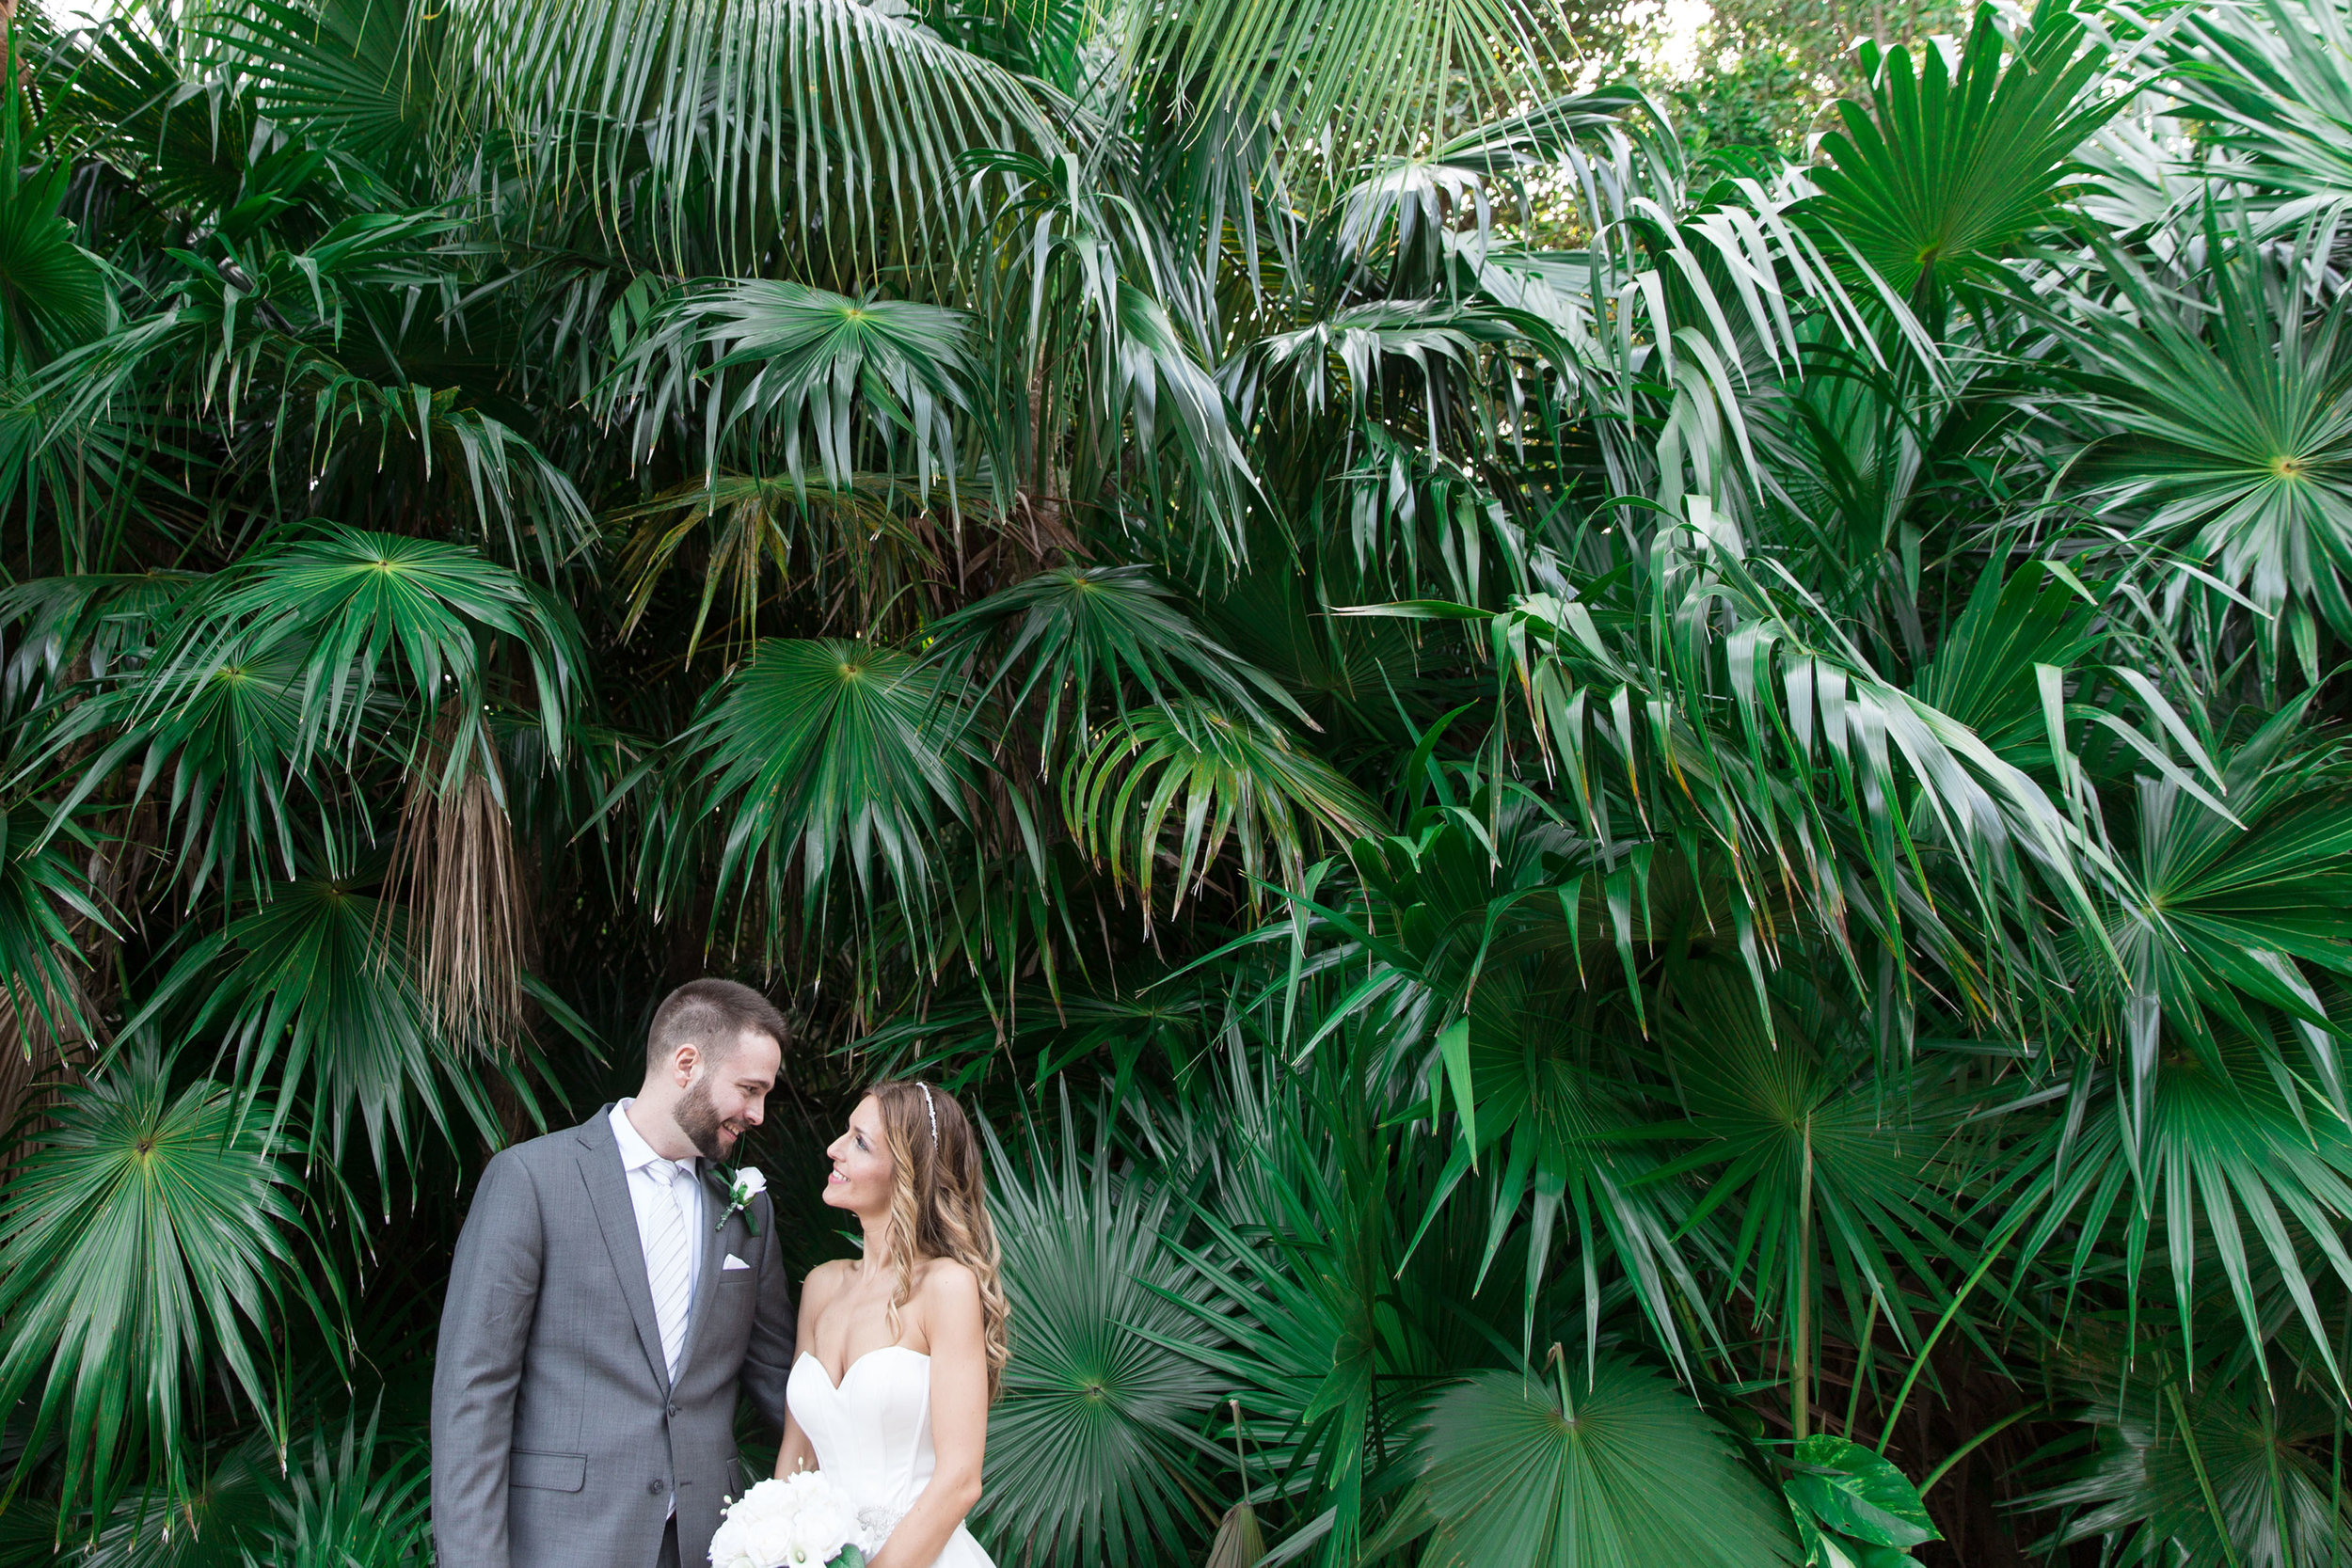 bridal portraits in the palm trees